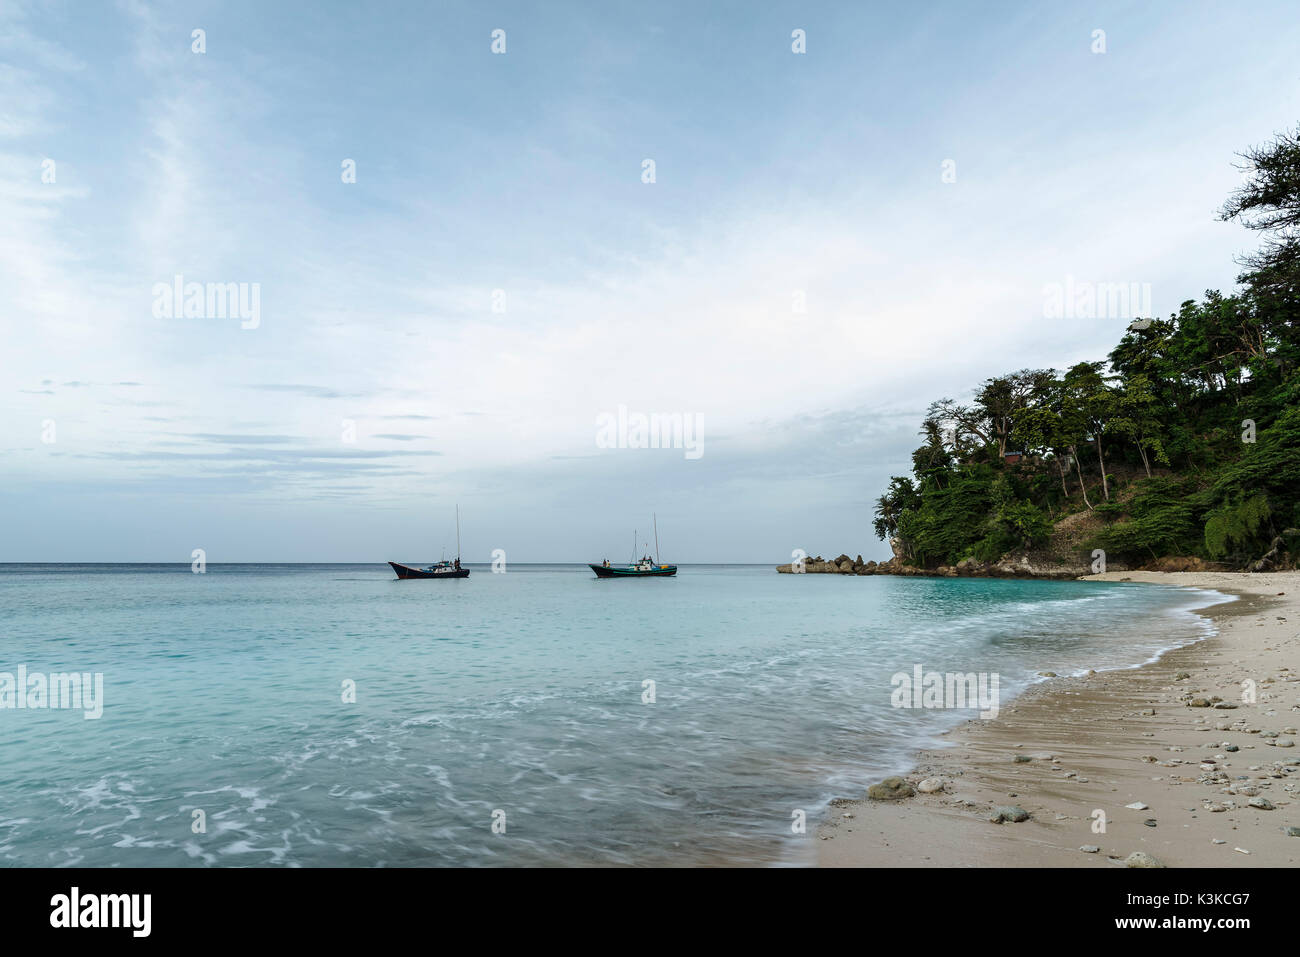 Two fishing boats in a small lagoon on the beach of the Fantastically nice island Pulau woe in Indonesia. Stock Photo